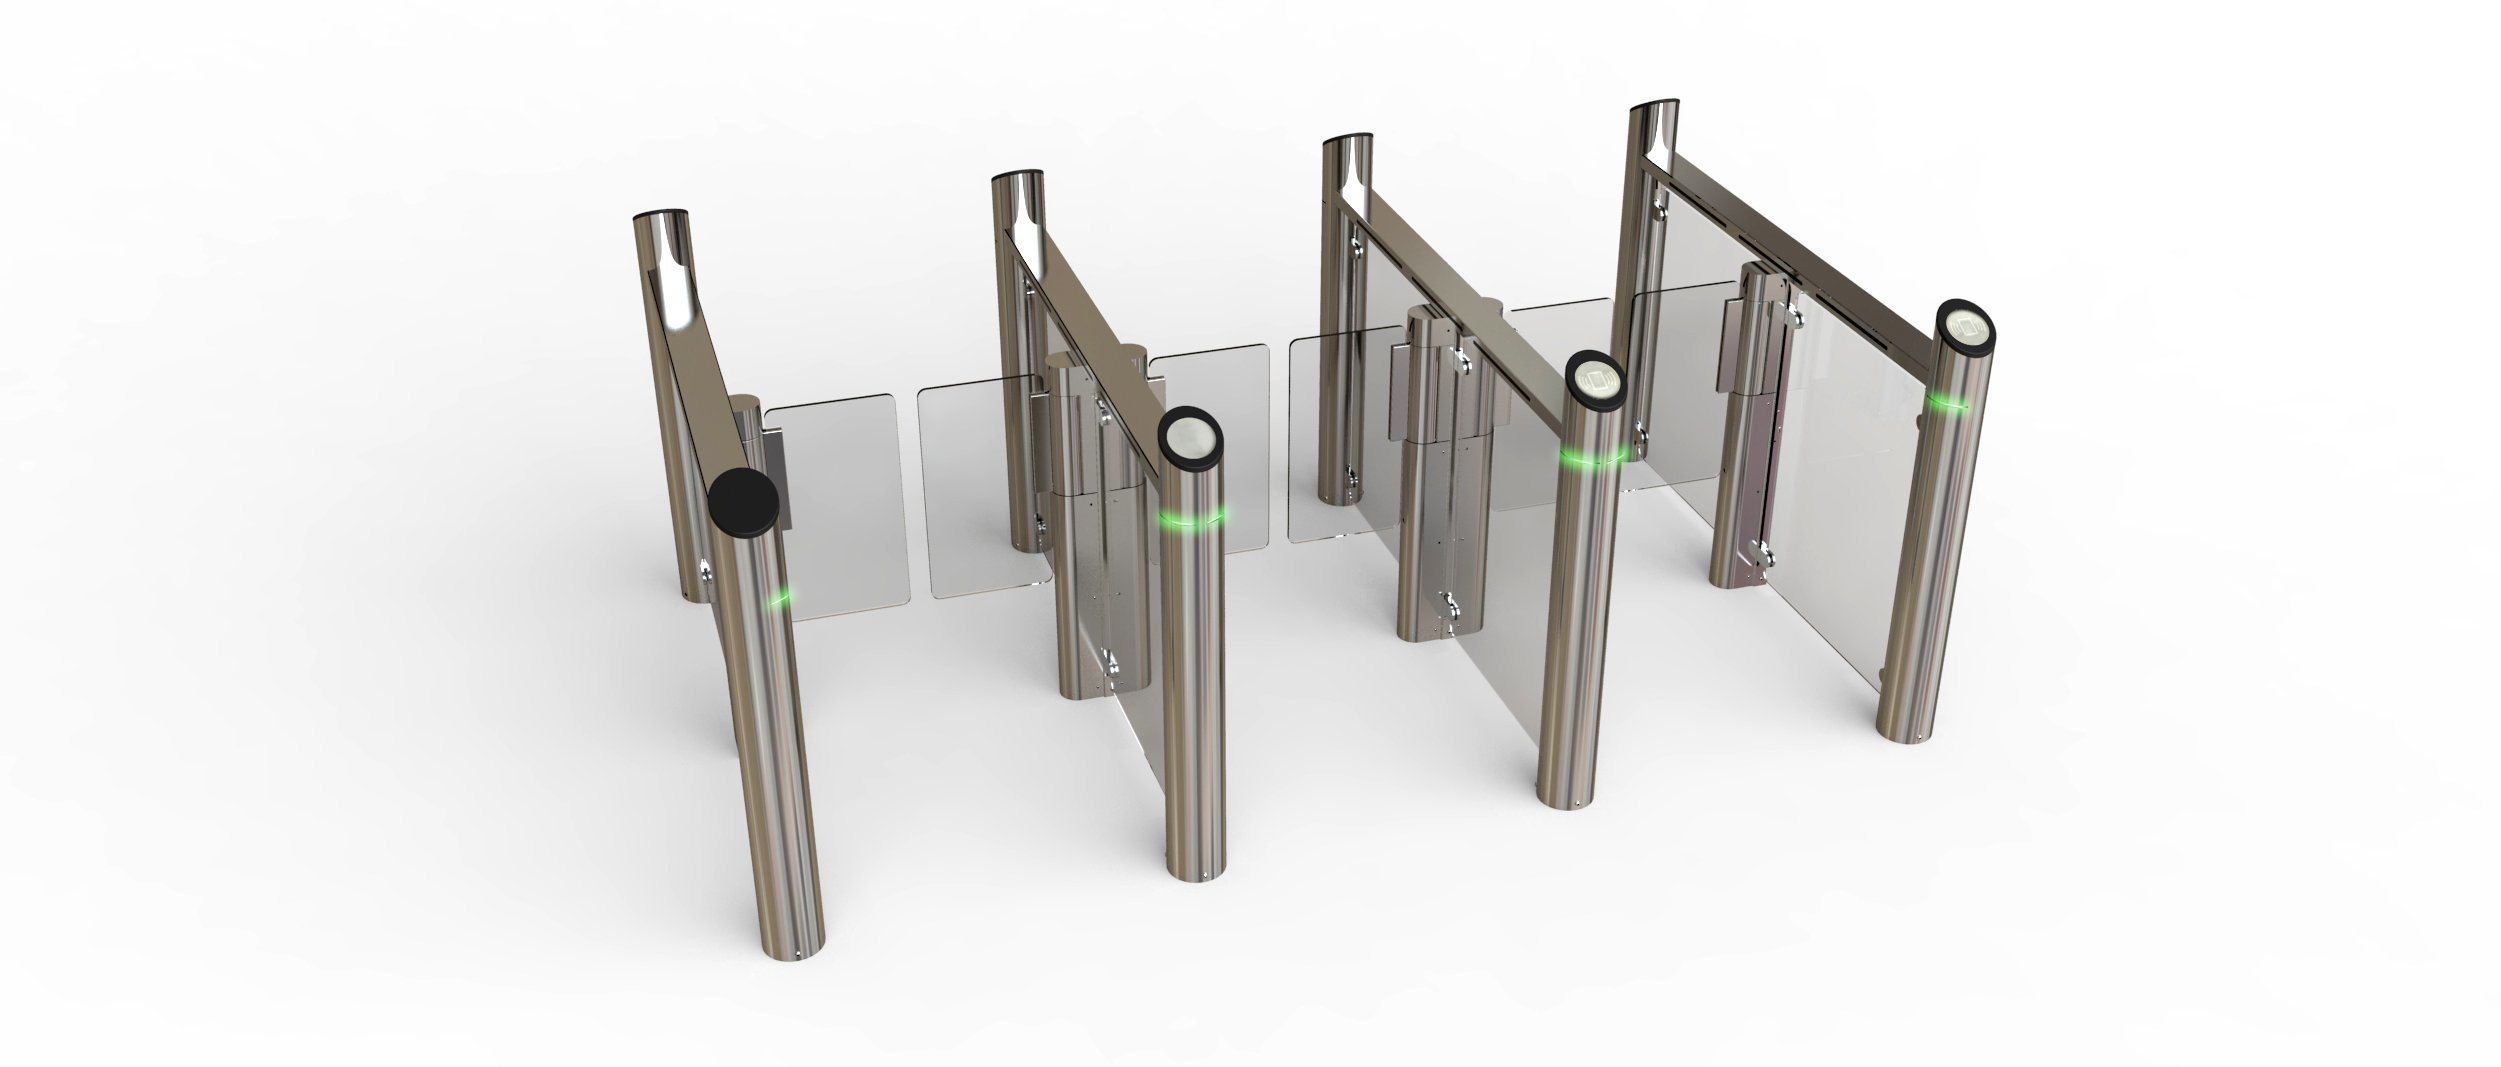 Optical Swing Gate with IC/ID Card Reader System